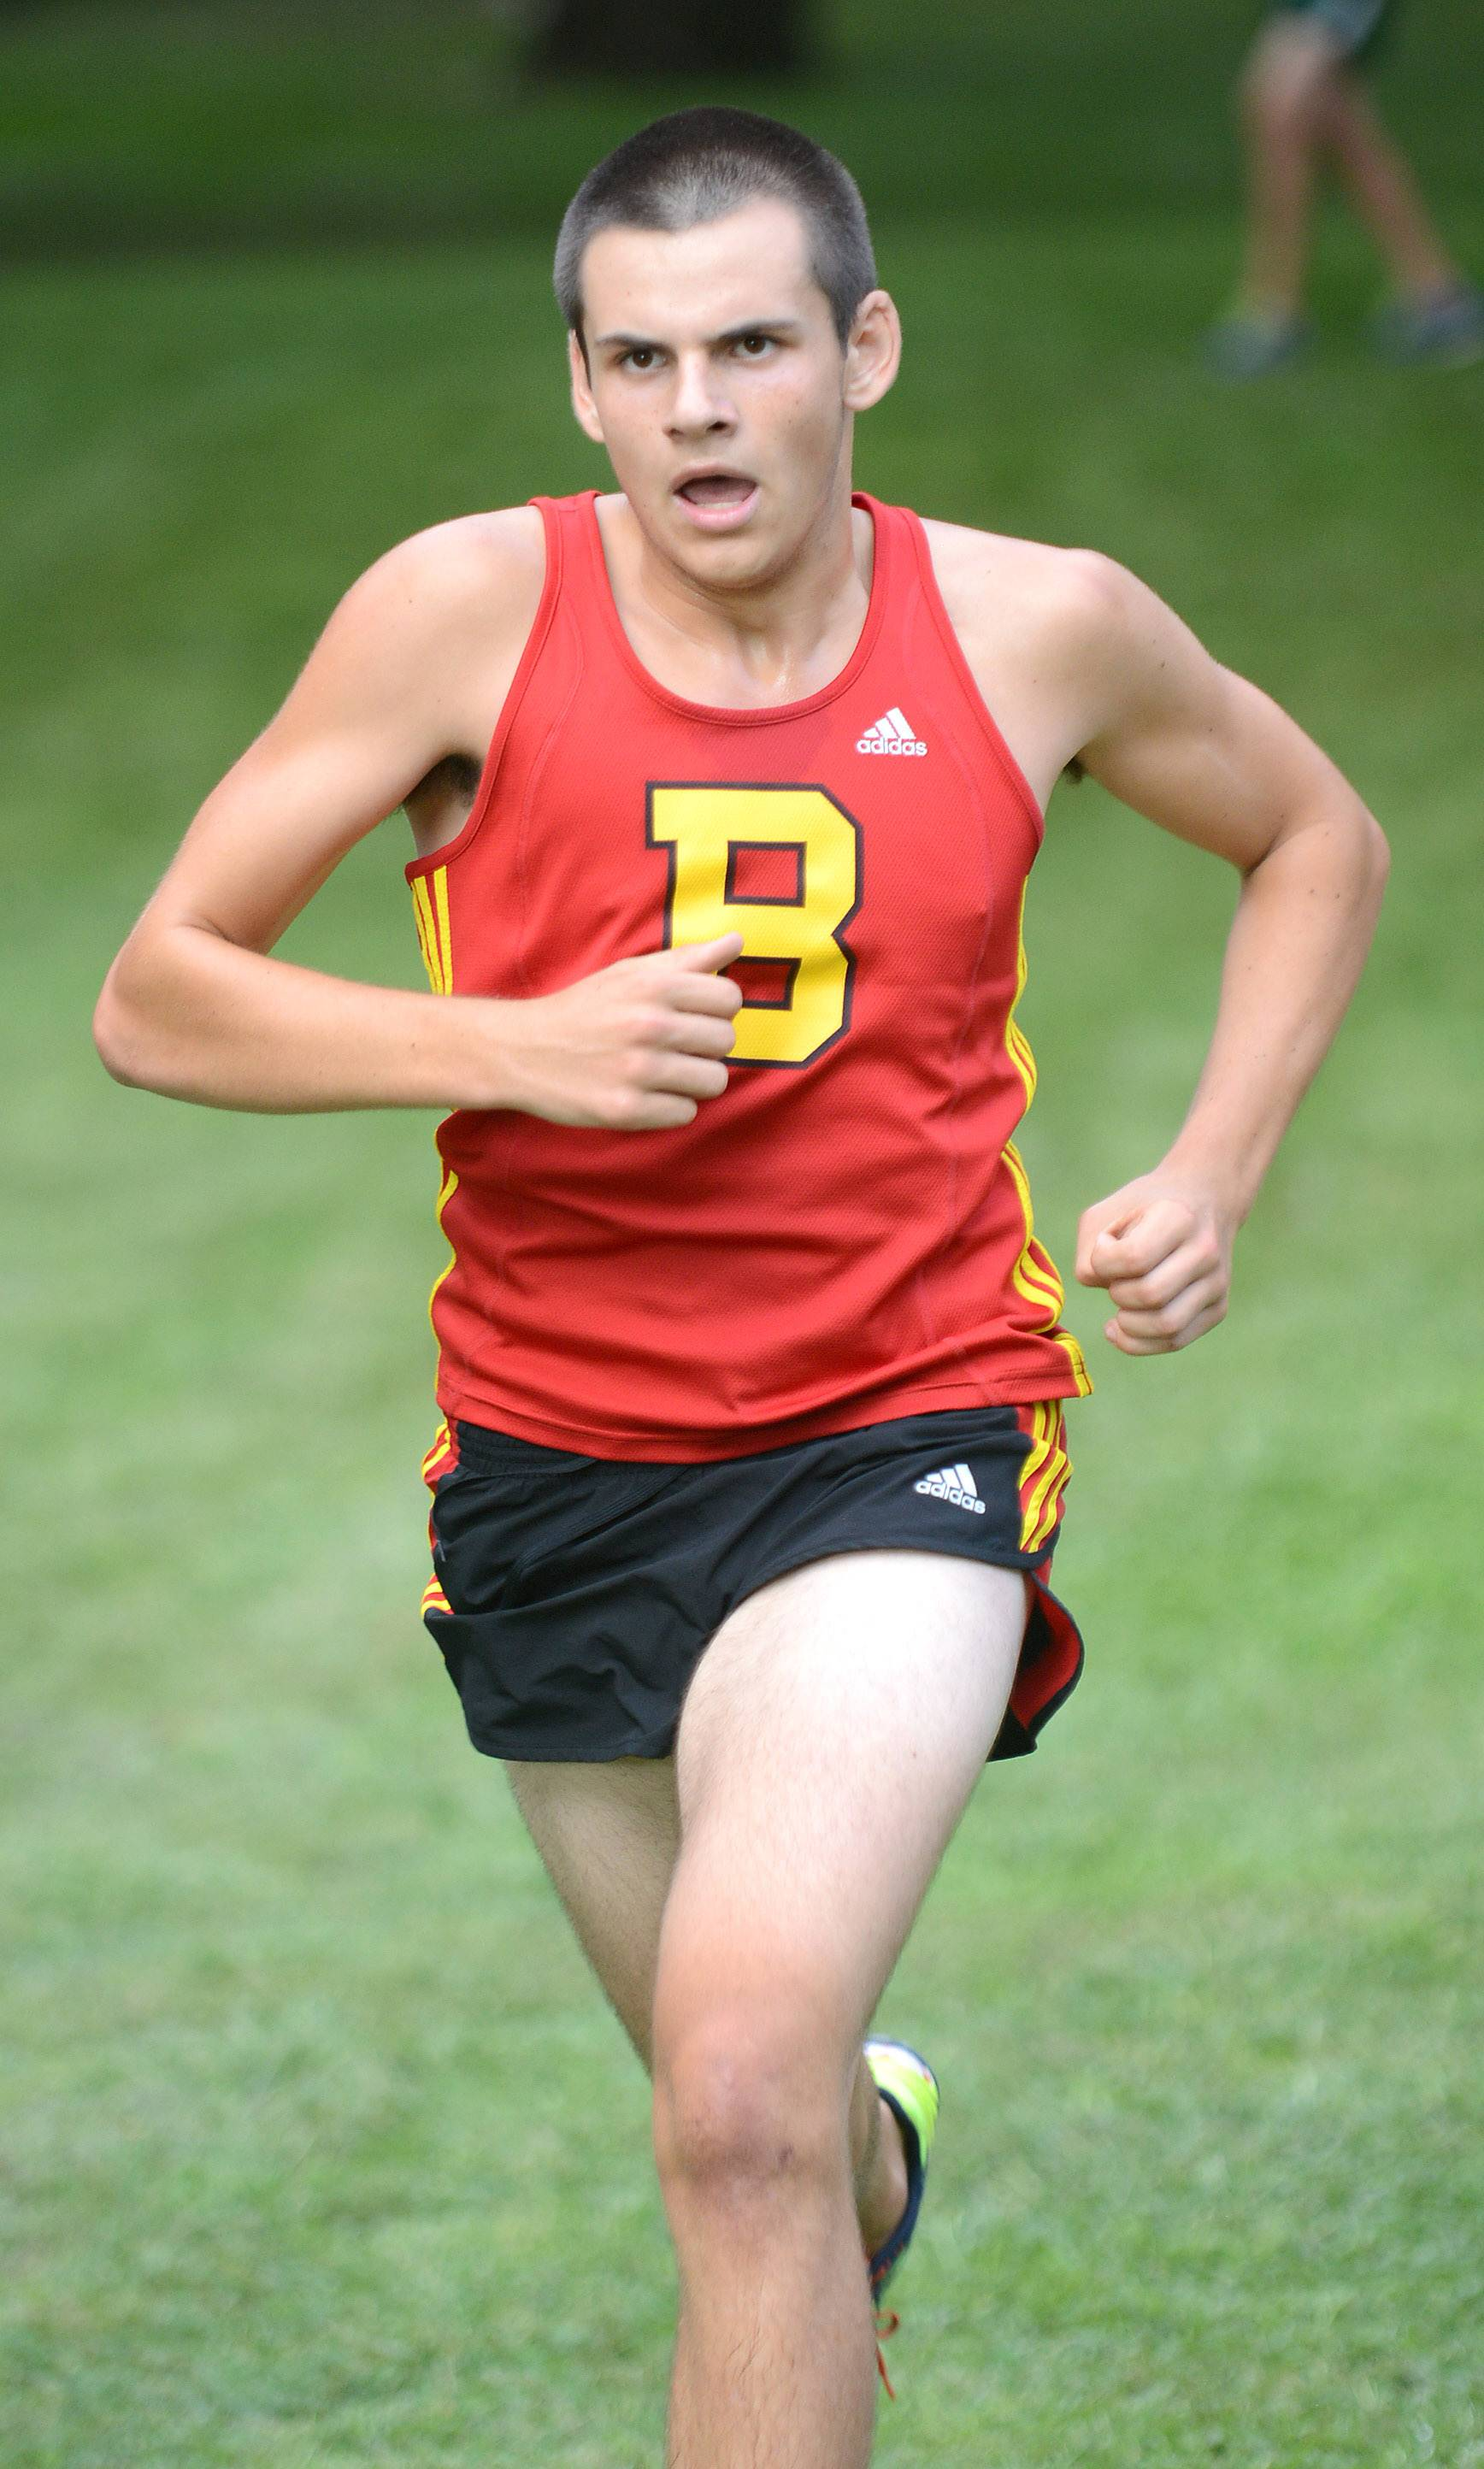 Batavia's Zachary Choffin nears the finish line at the Elgin Invite cross country meet at Lords Park in Elgin on Tuesday. He would cross first for his varsity team.